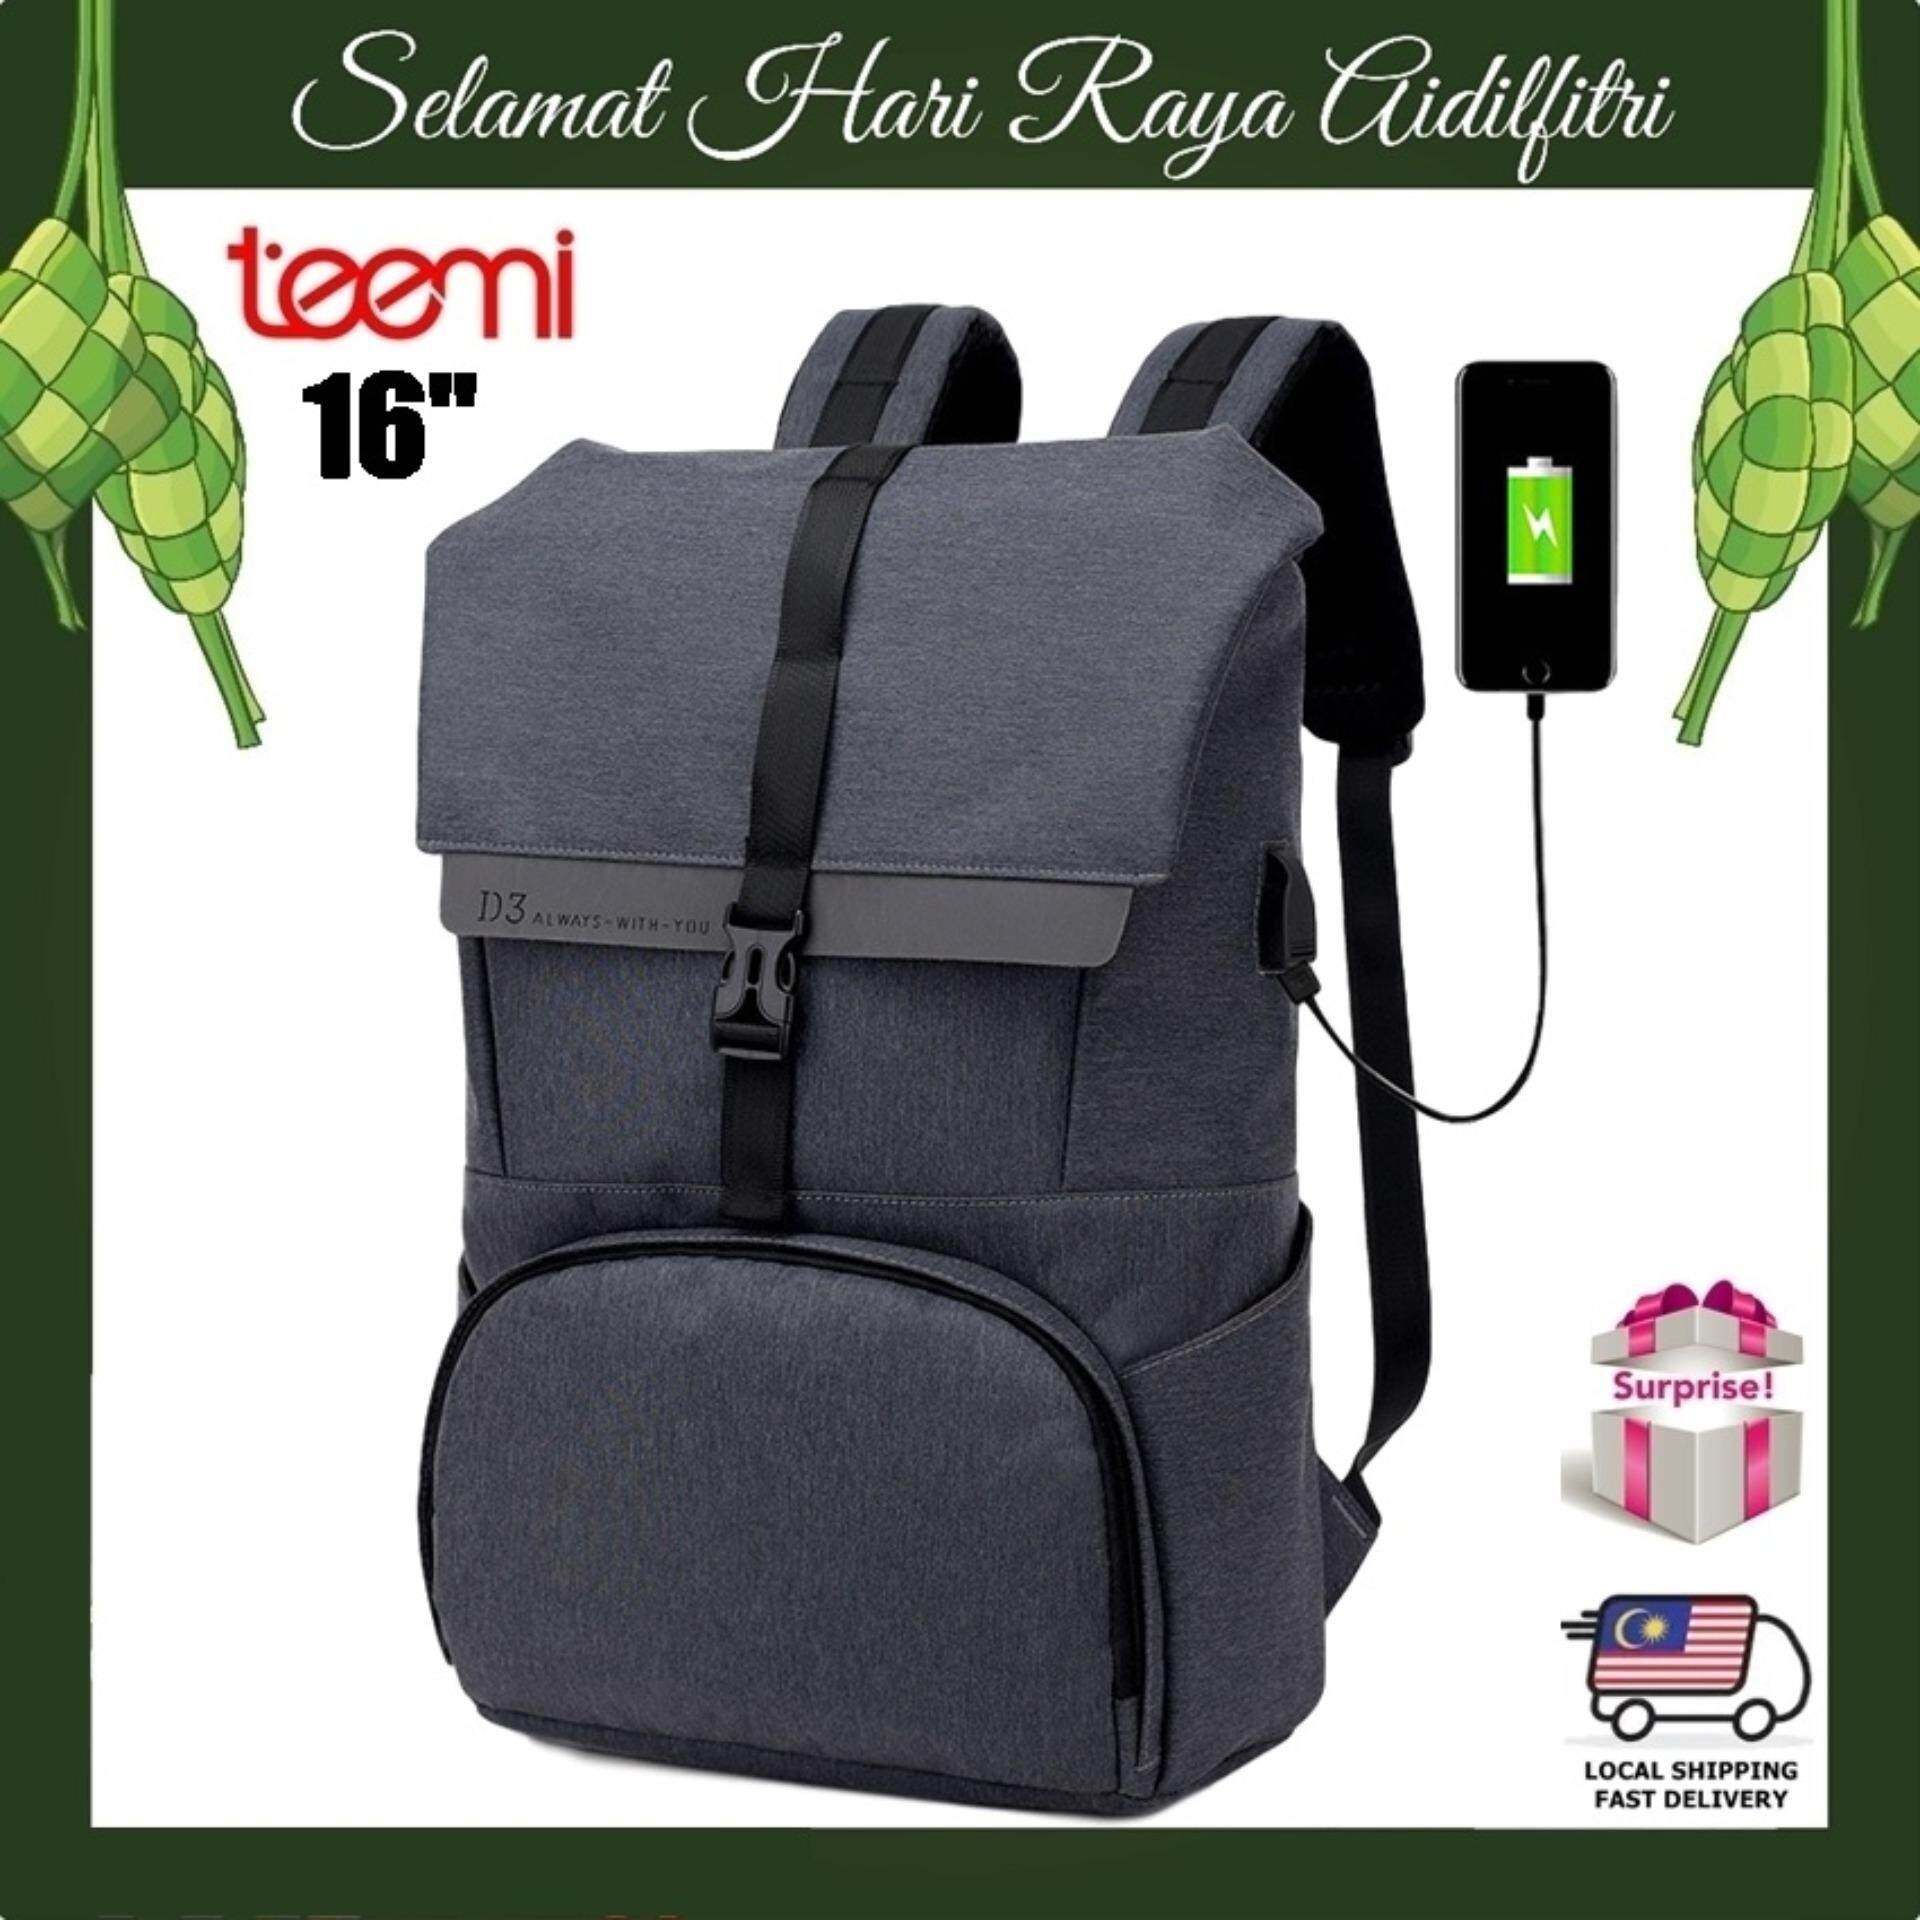 "TEEMI Flap Front Buckle USB Charging 16"" Laptop Minimalist Travel Backpack Water Resistant Outdoor Business Casual Bag"